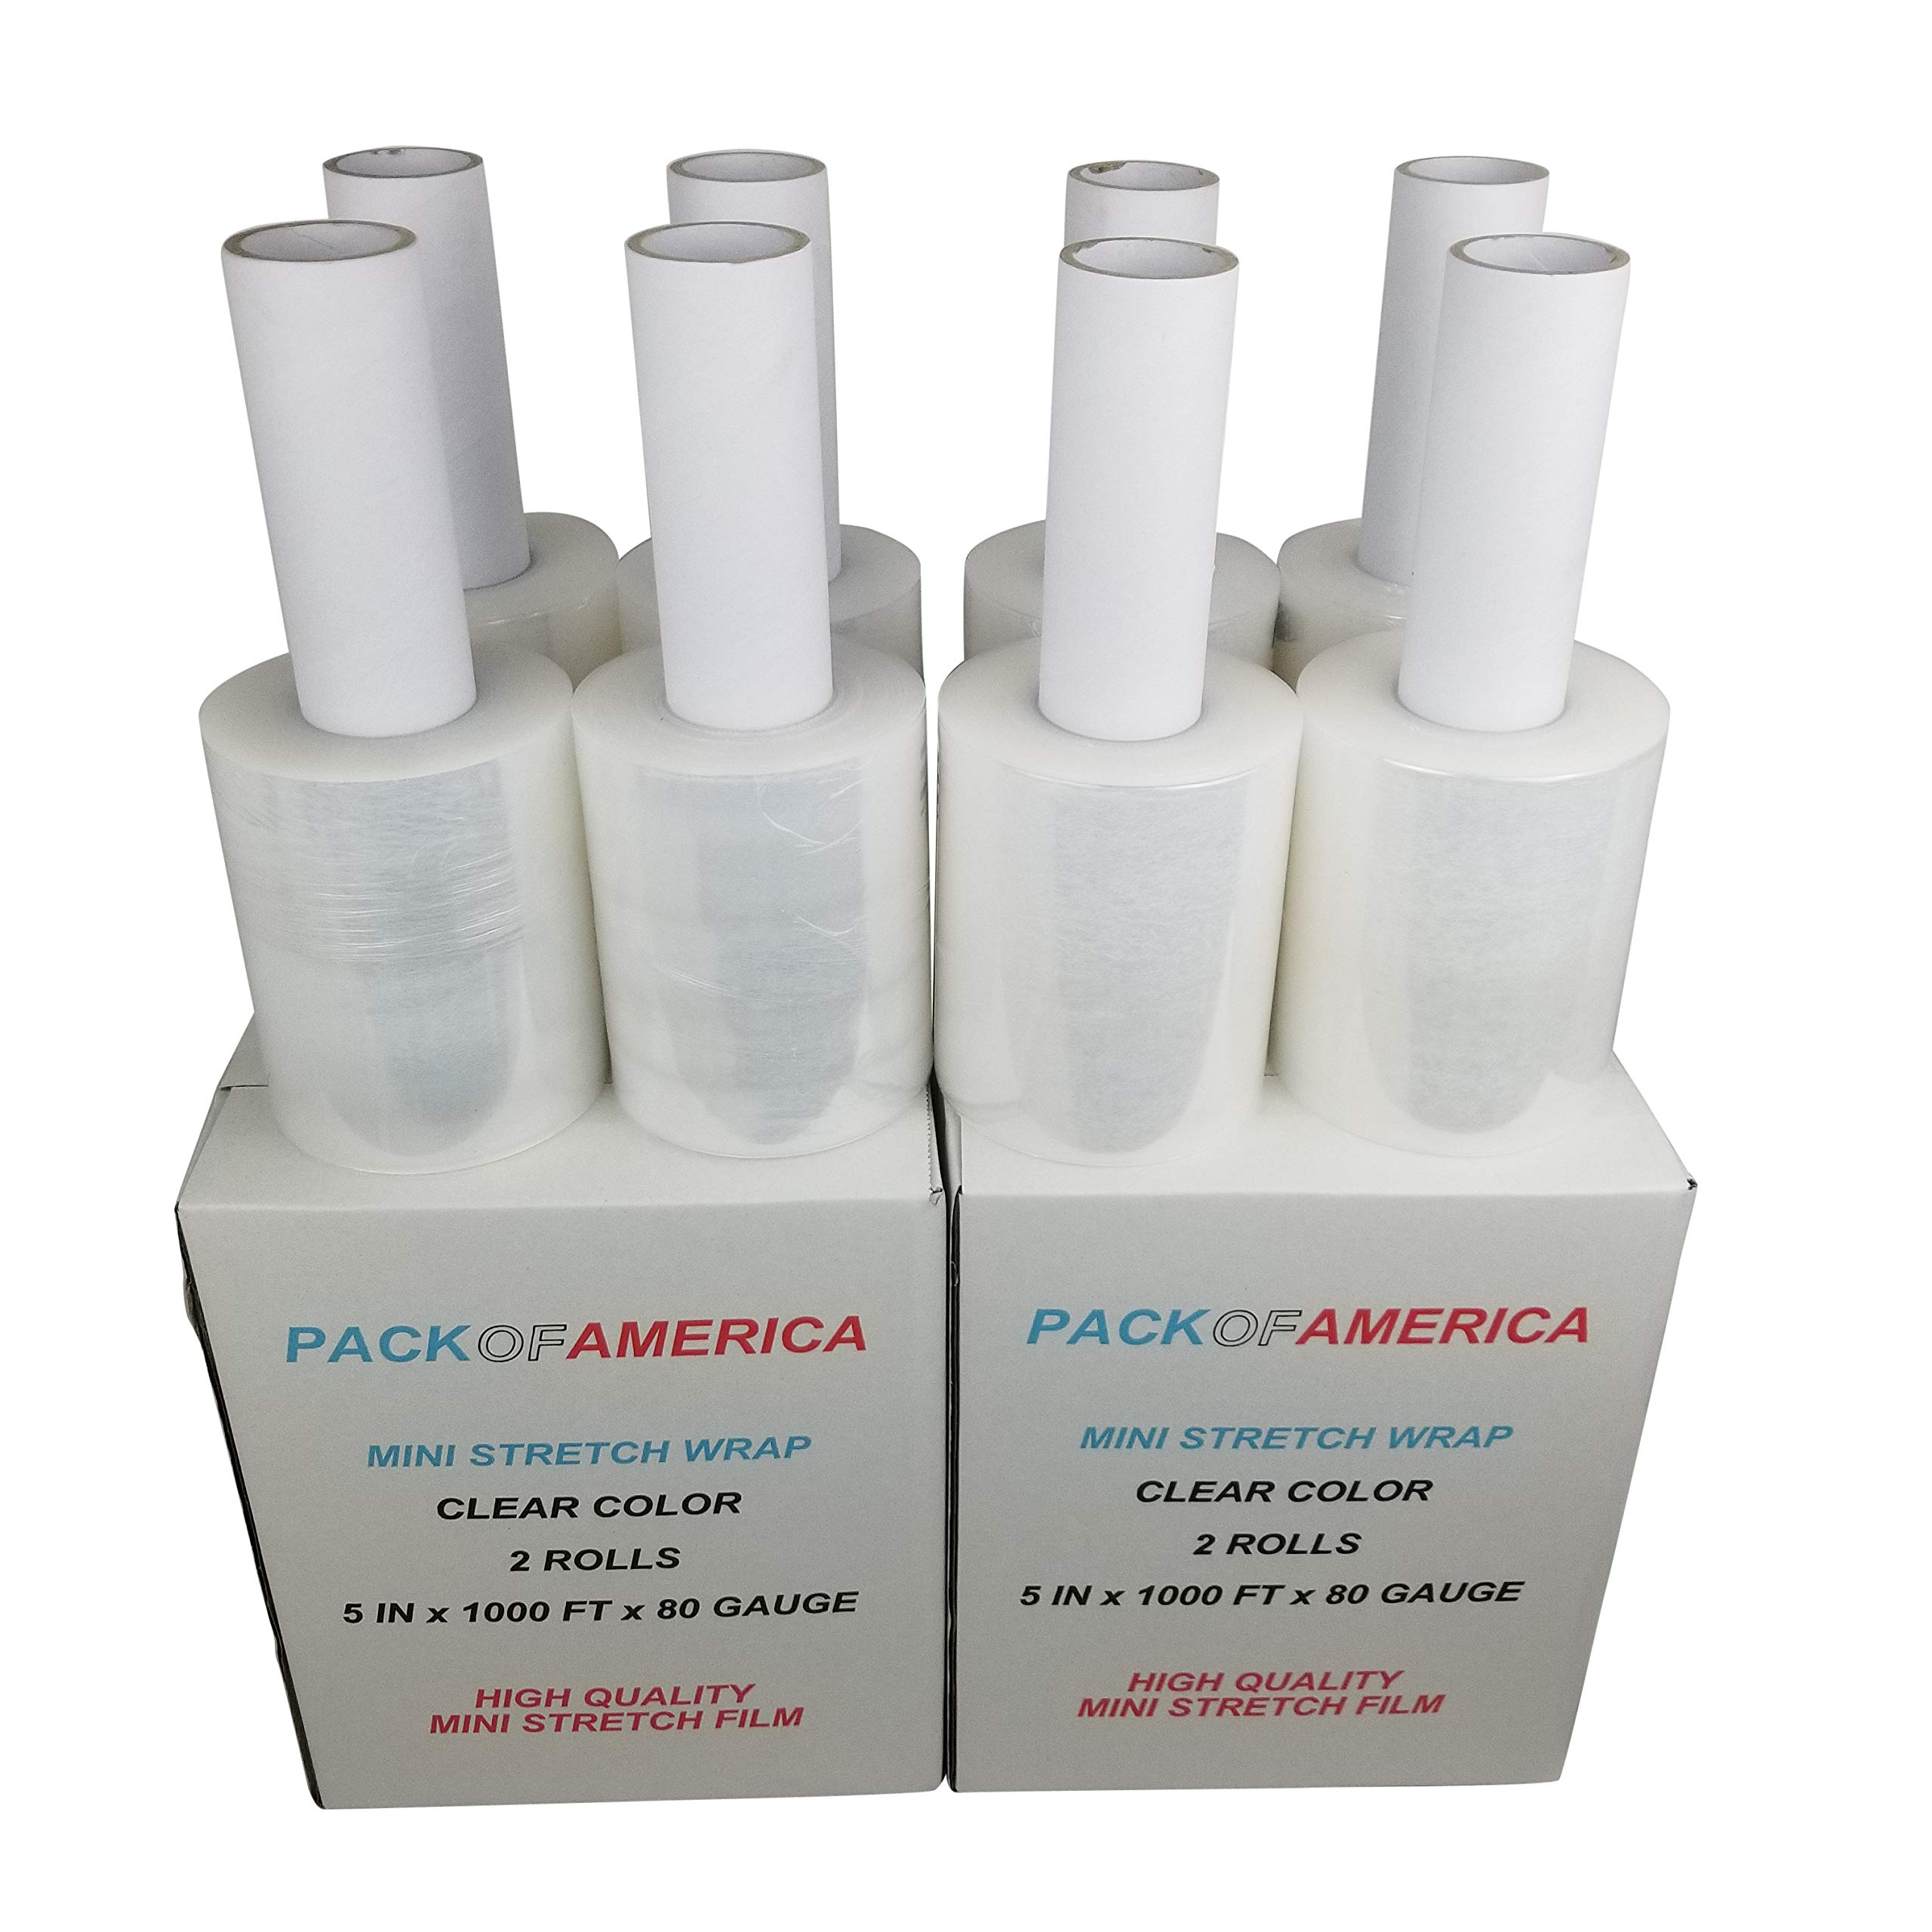 Pack of America | 5'' x 1000 ft (8 Pack) Mini Stretch Wrap Film with Carton Handle | 80 Gauge Clear Plastic Shrink Wrap | Moving Supplies | Industrial Strength Hand Cling Wrap for Bundling and Wrapping by Pack of America